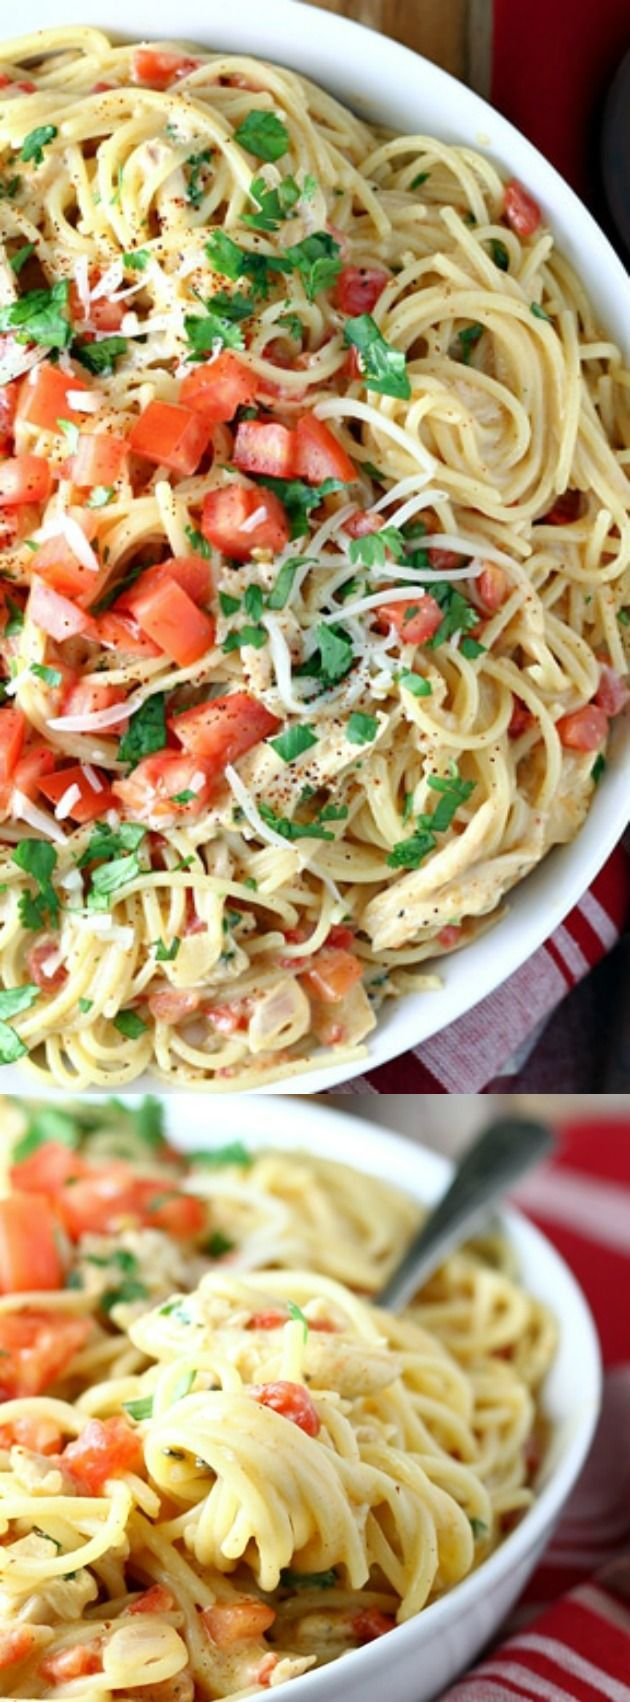 This White Tex Mex Chicken Spaghetti from Let's Dish has everyone coming back for seconds. Rotel tomatoes, chili powder, and cumin give this savory pasta dish it's Tex Mex flare!